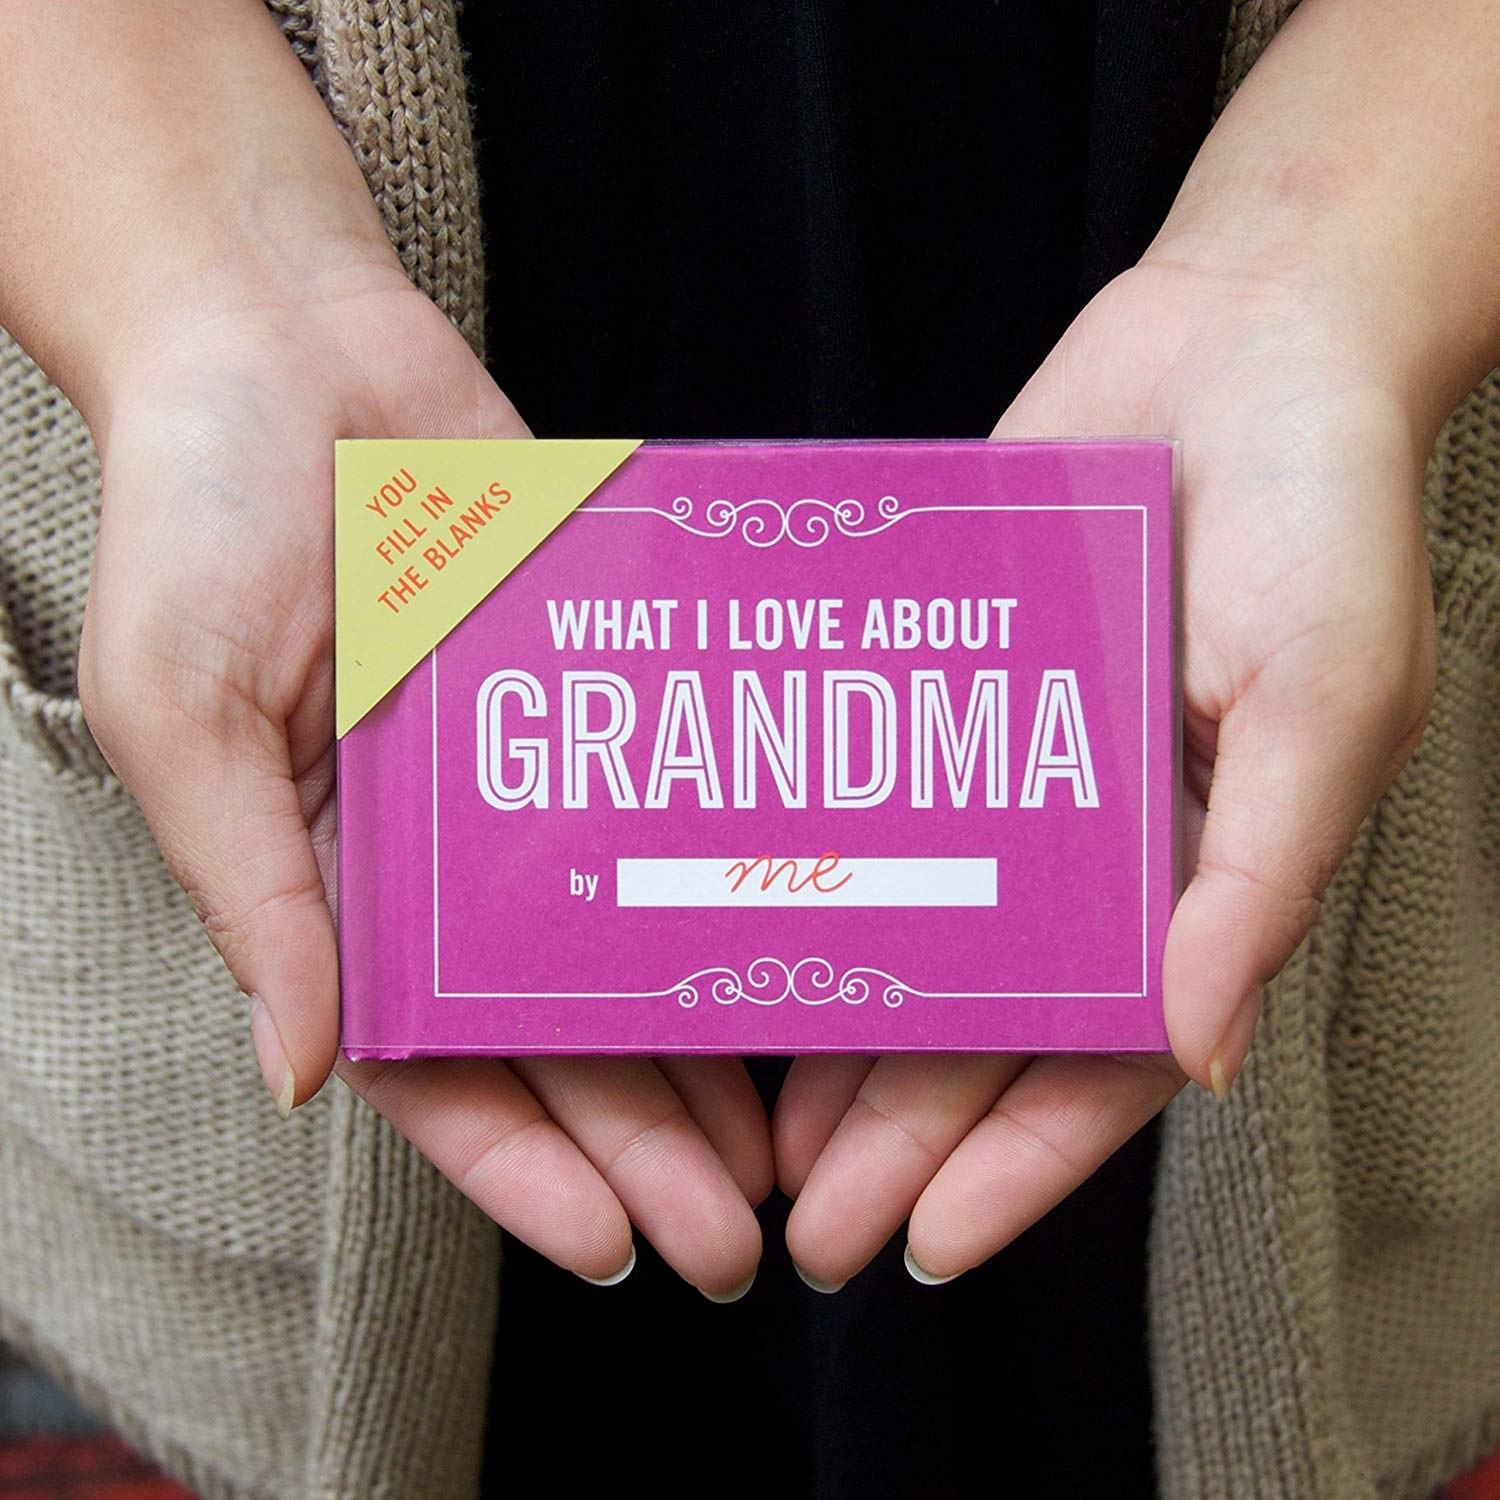 25 Personalized Mother's Day Gifts Your Mom Will Adore